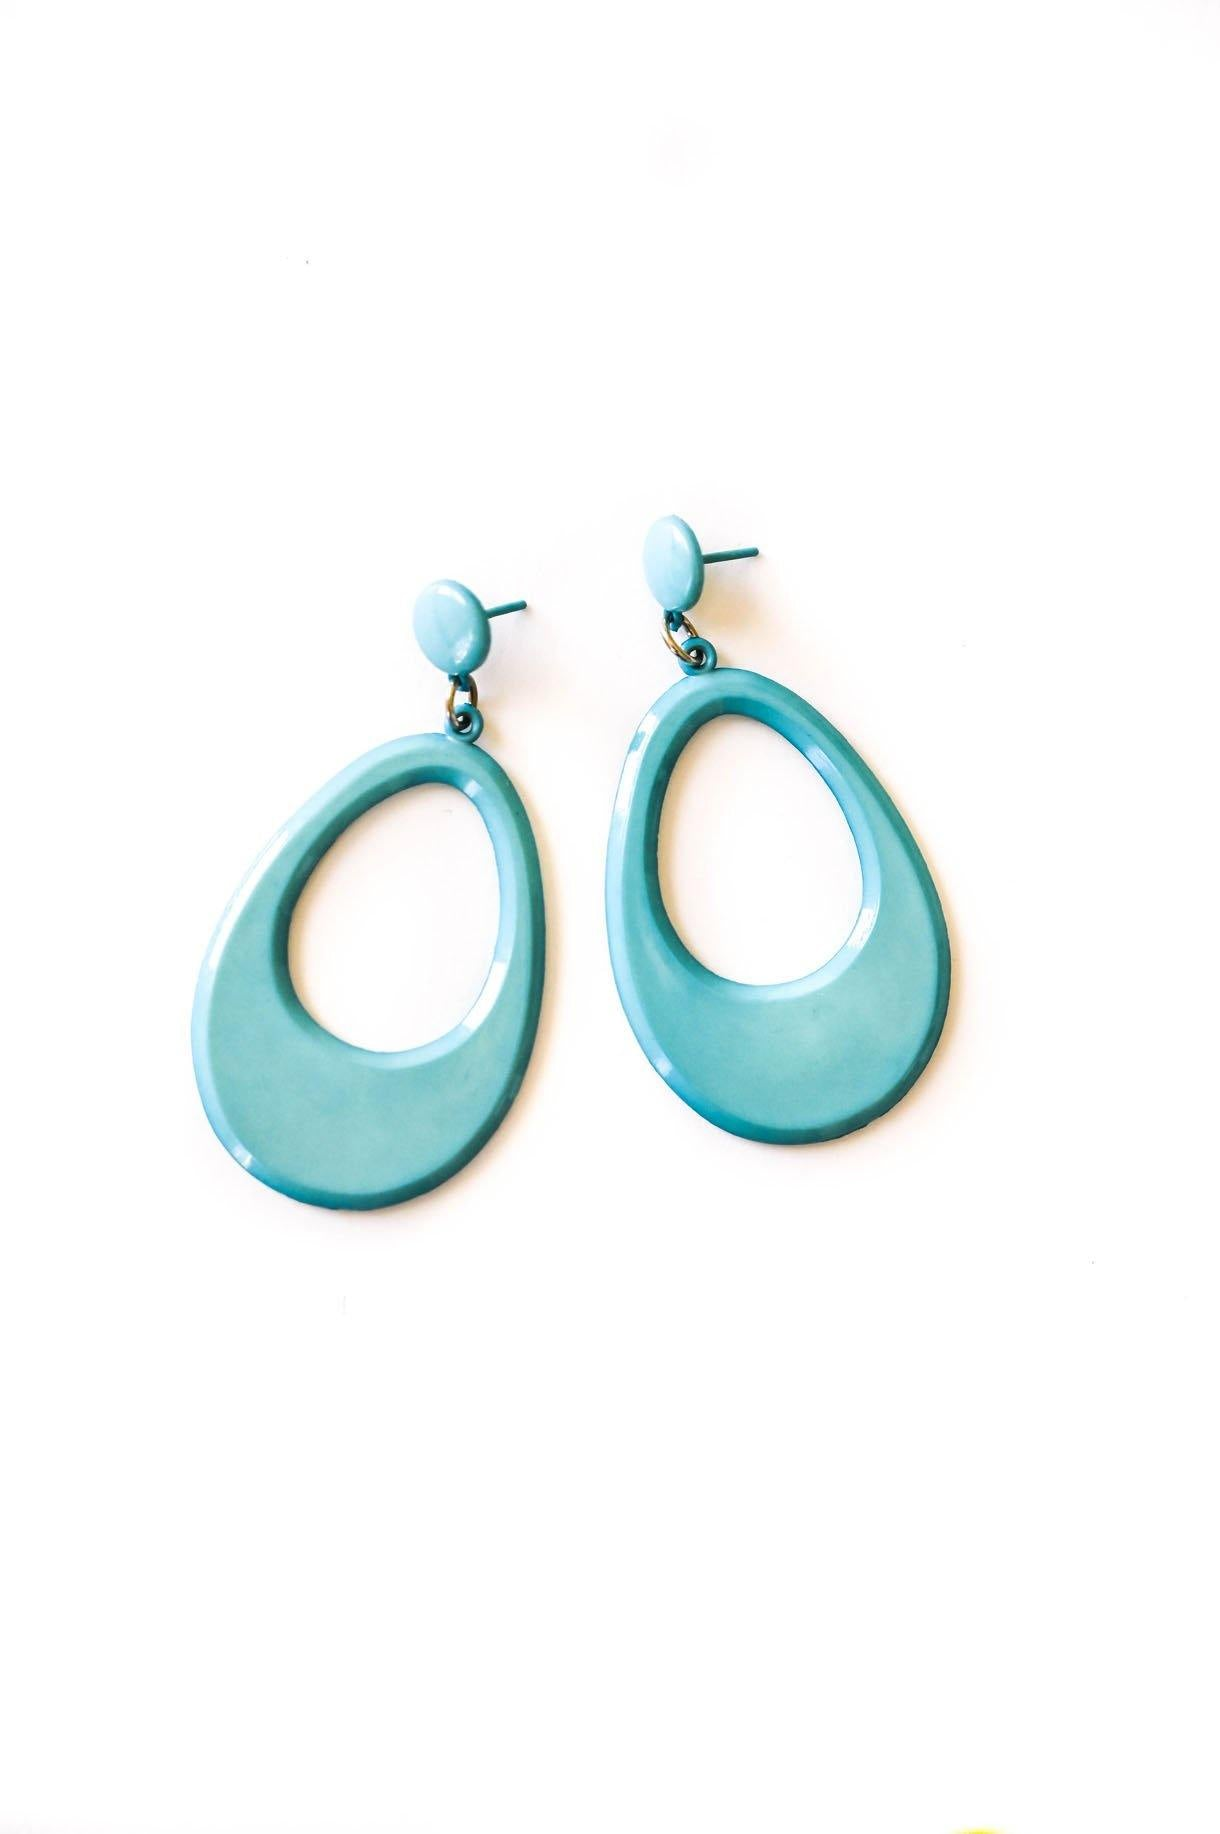 Teal Teardrop Pierced Earrings